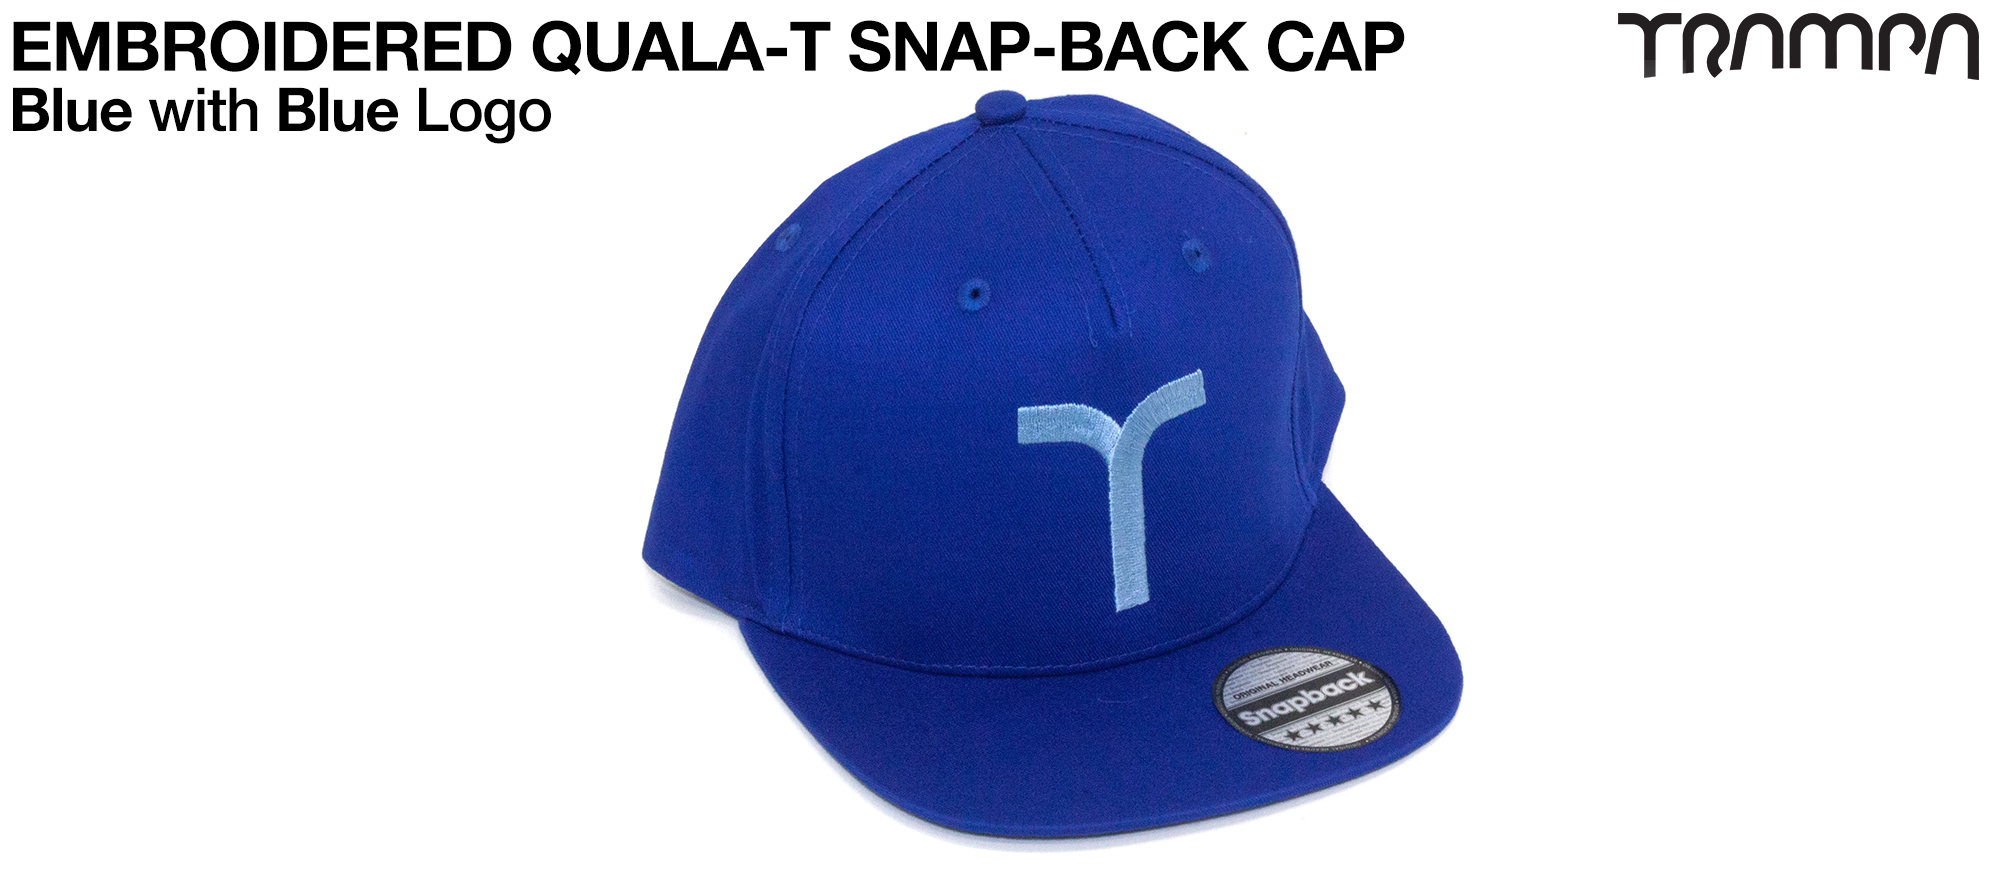 BLUE SNAPBACK Cap with BLUE QUALA-T logo embroidered